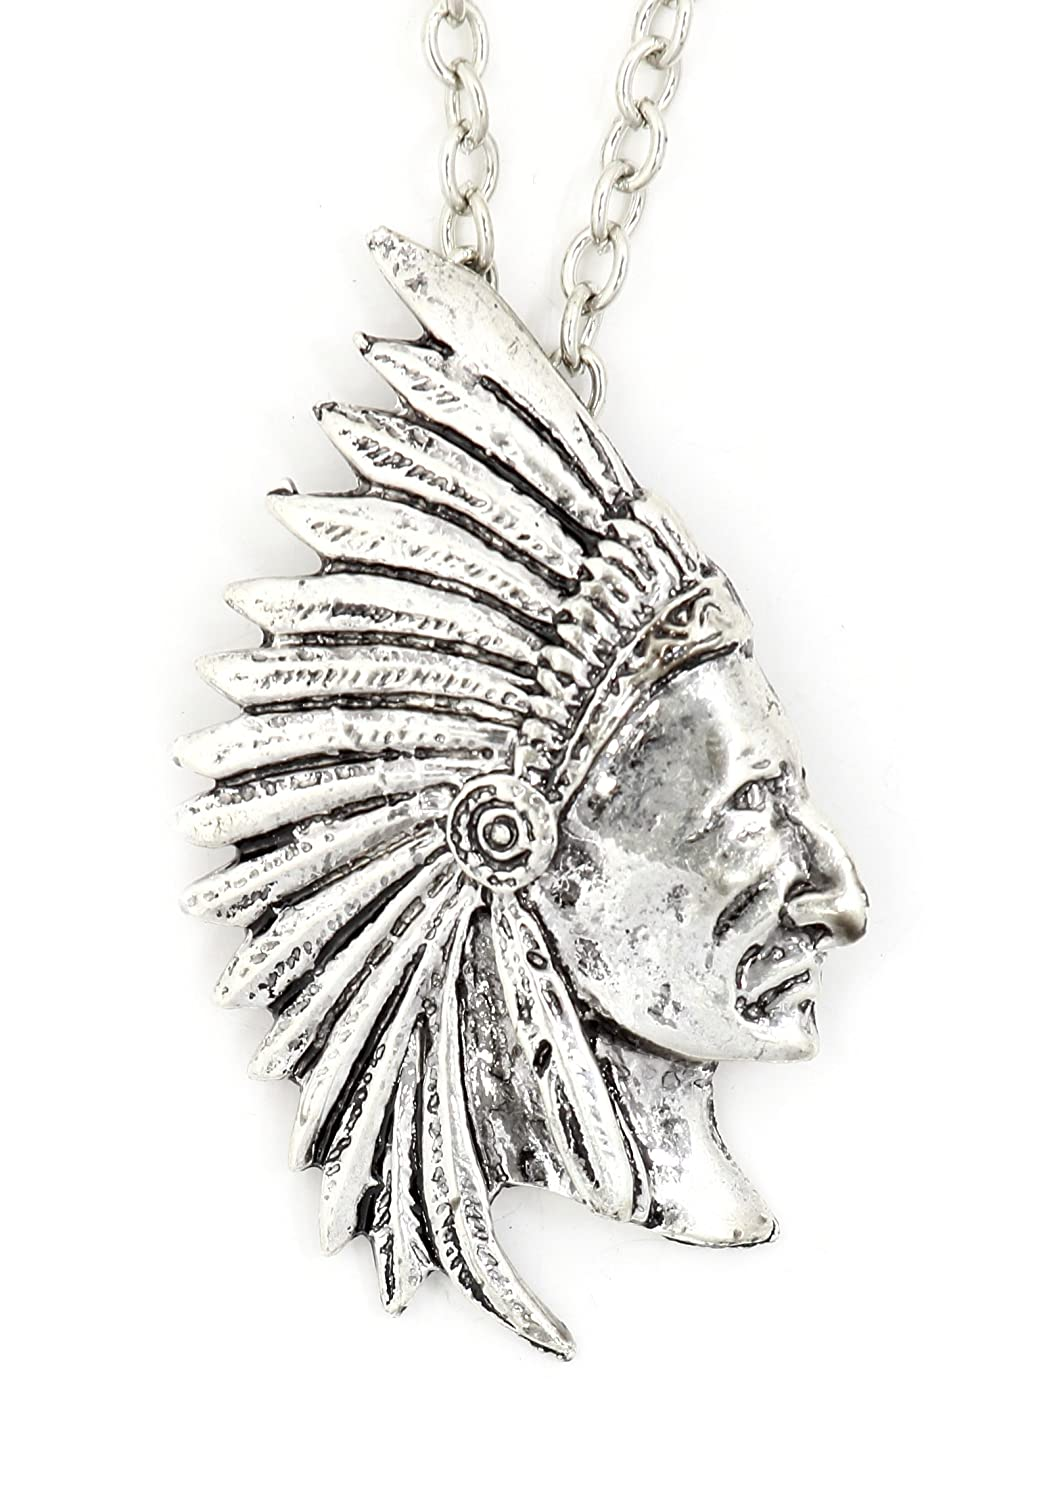 Magic Metal Indian Chief Necklace Native American Warrior Pendant NU20 Fashion Jewelry